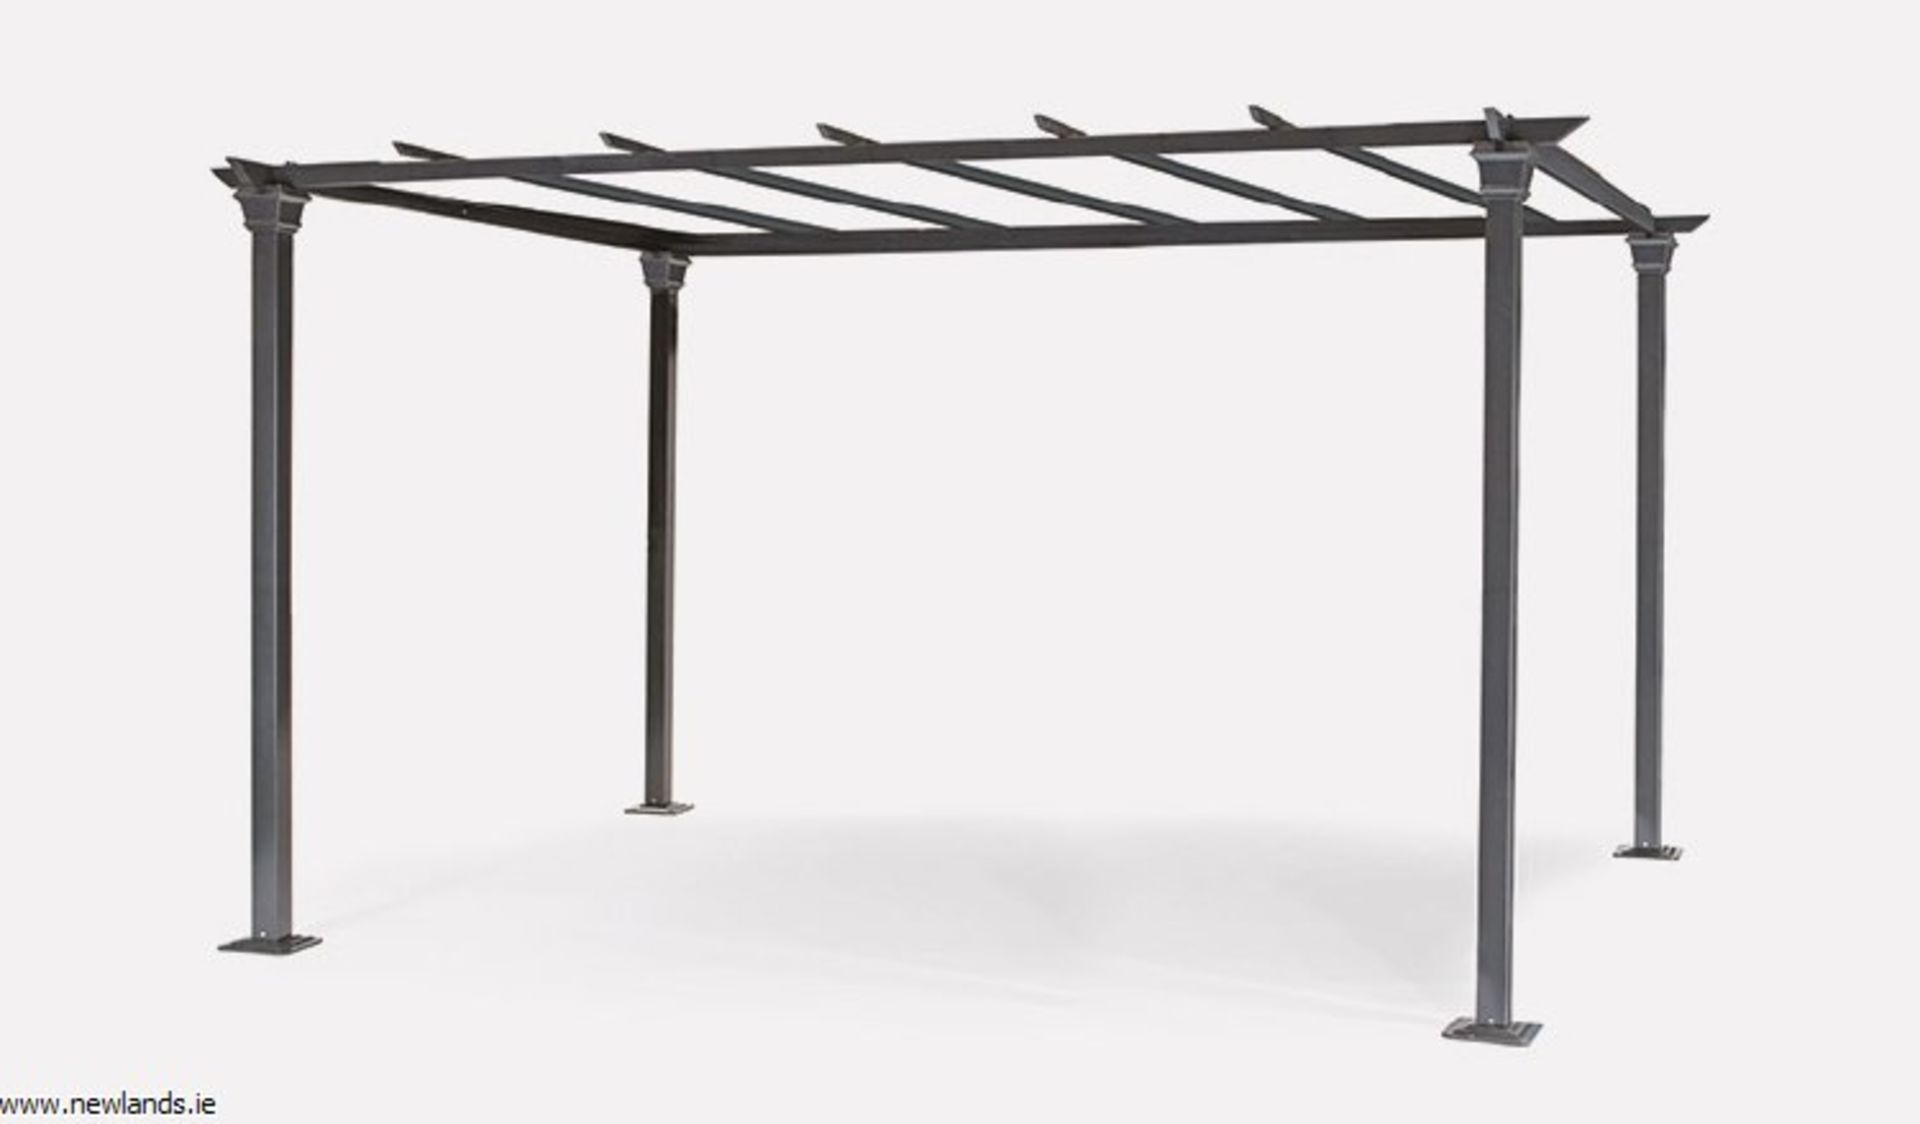 Lot 43005 - V Brand New 3m x 4m Aluminium Charcoal Grey Pergola With Zipped Cover - Sturdy Design And Folds Back